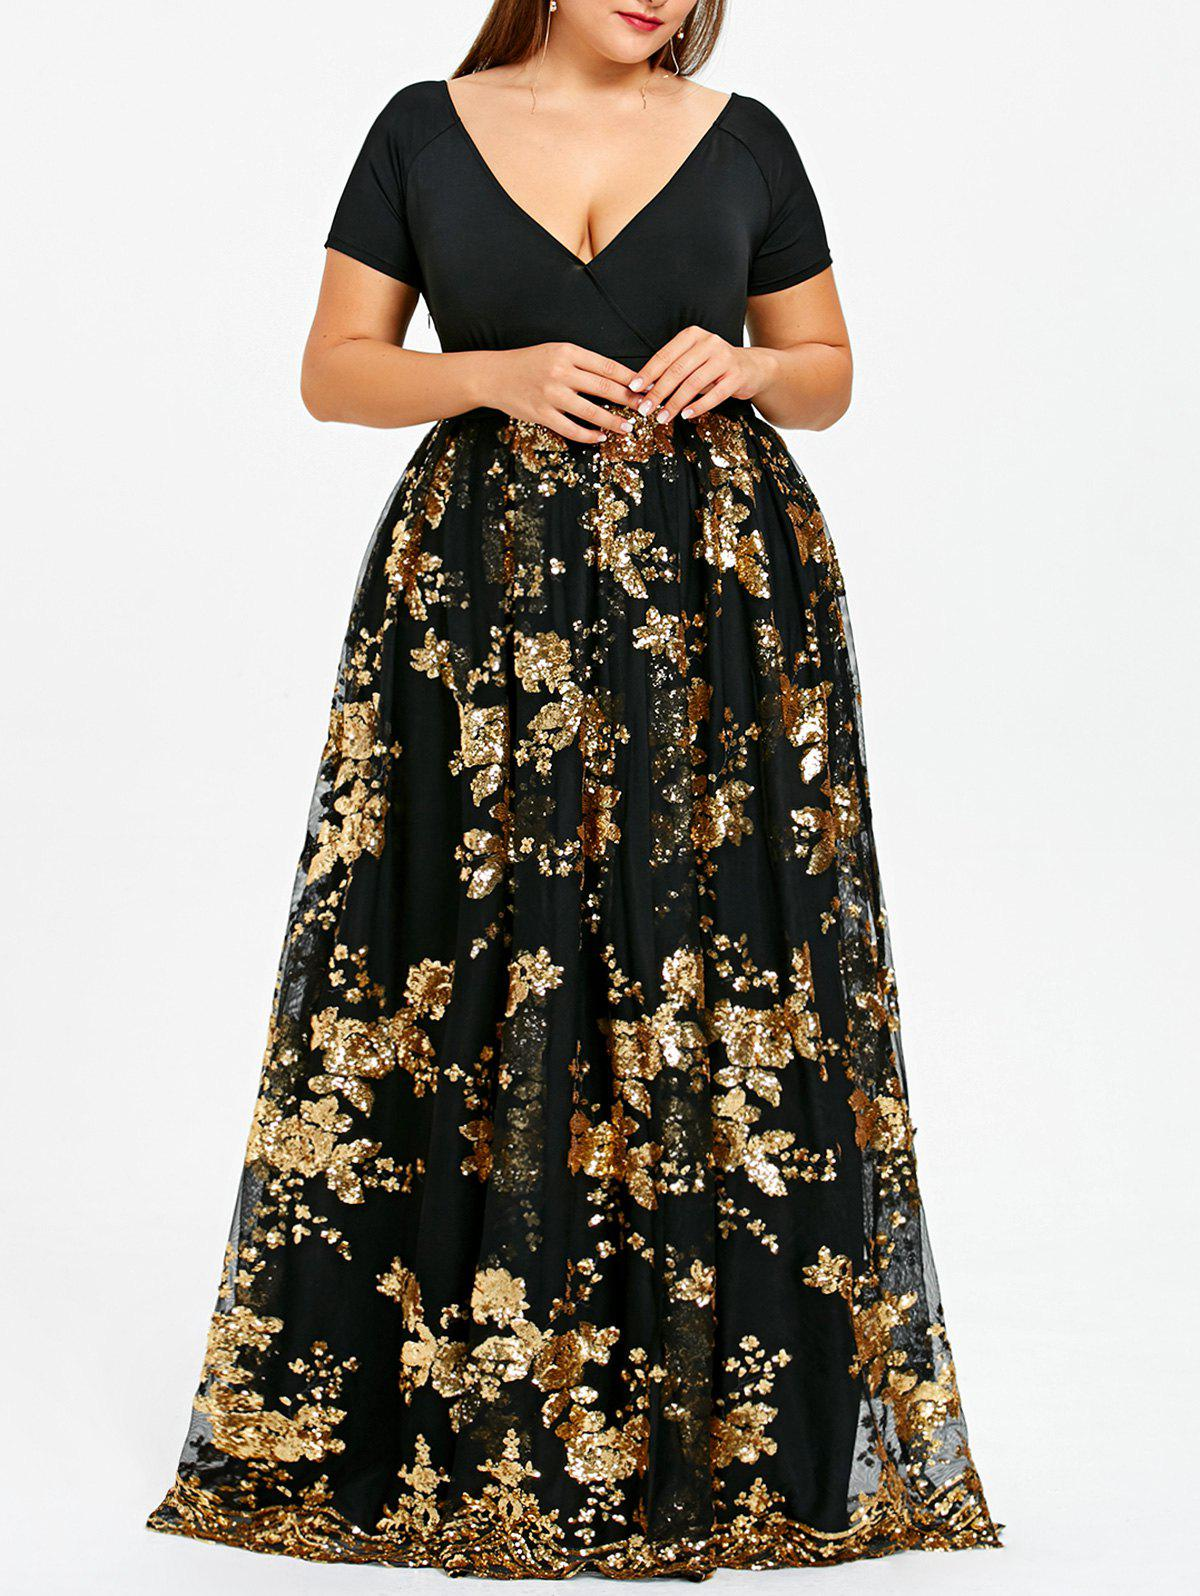 65a835529b2 46% OFF  Plus Size Floral Sequined Maxi Prom Dress